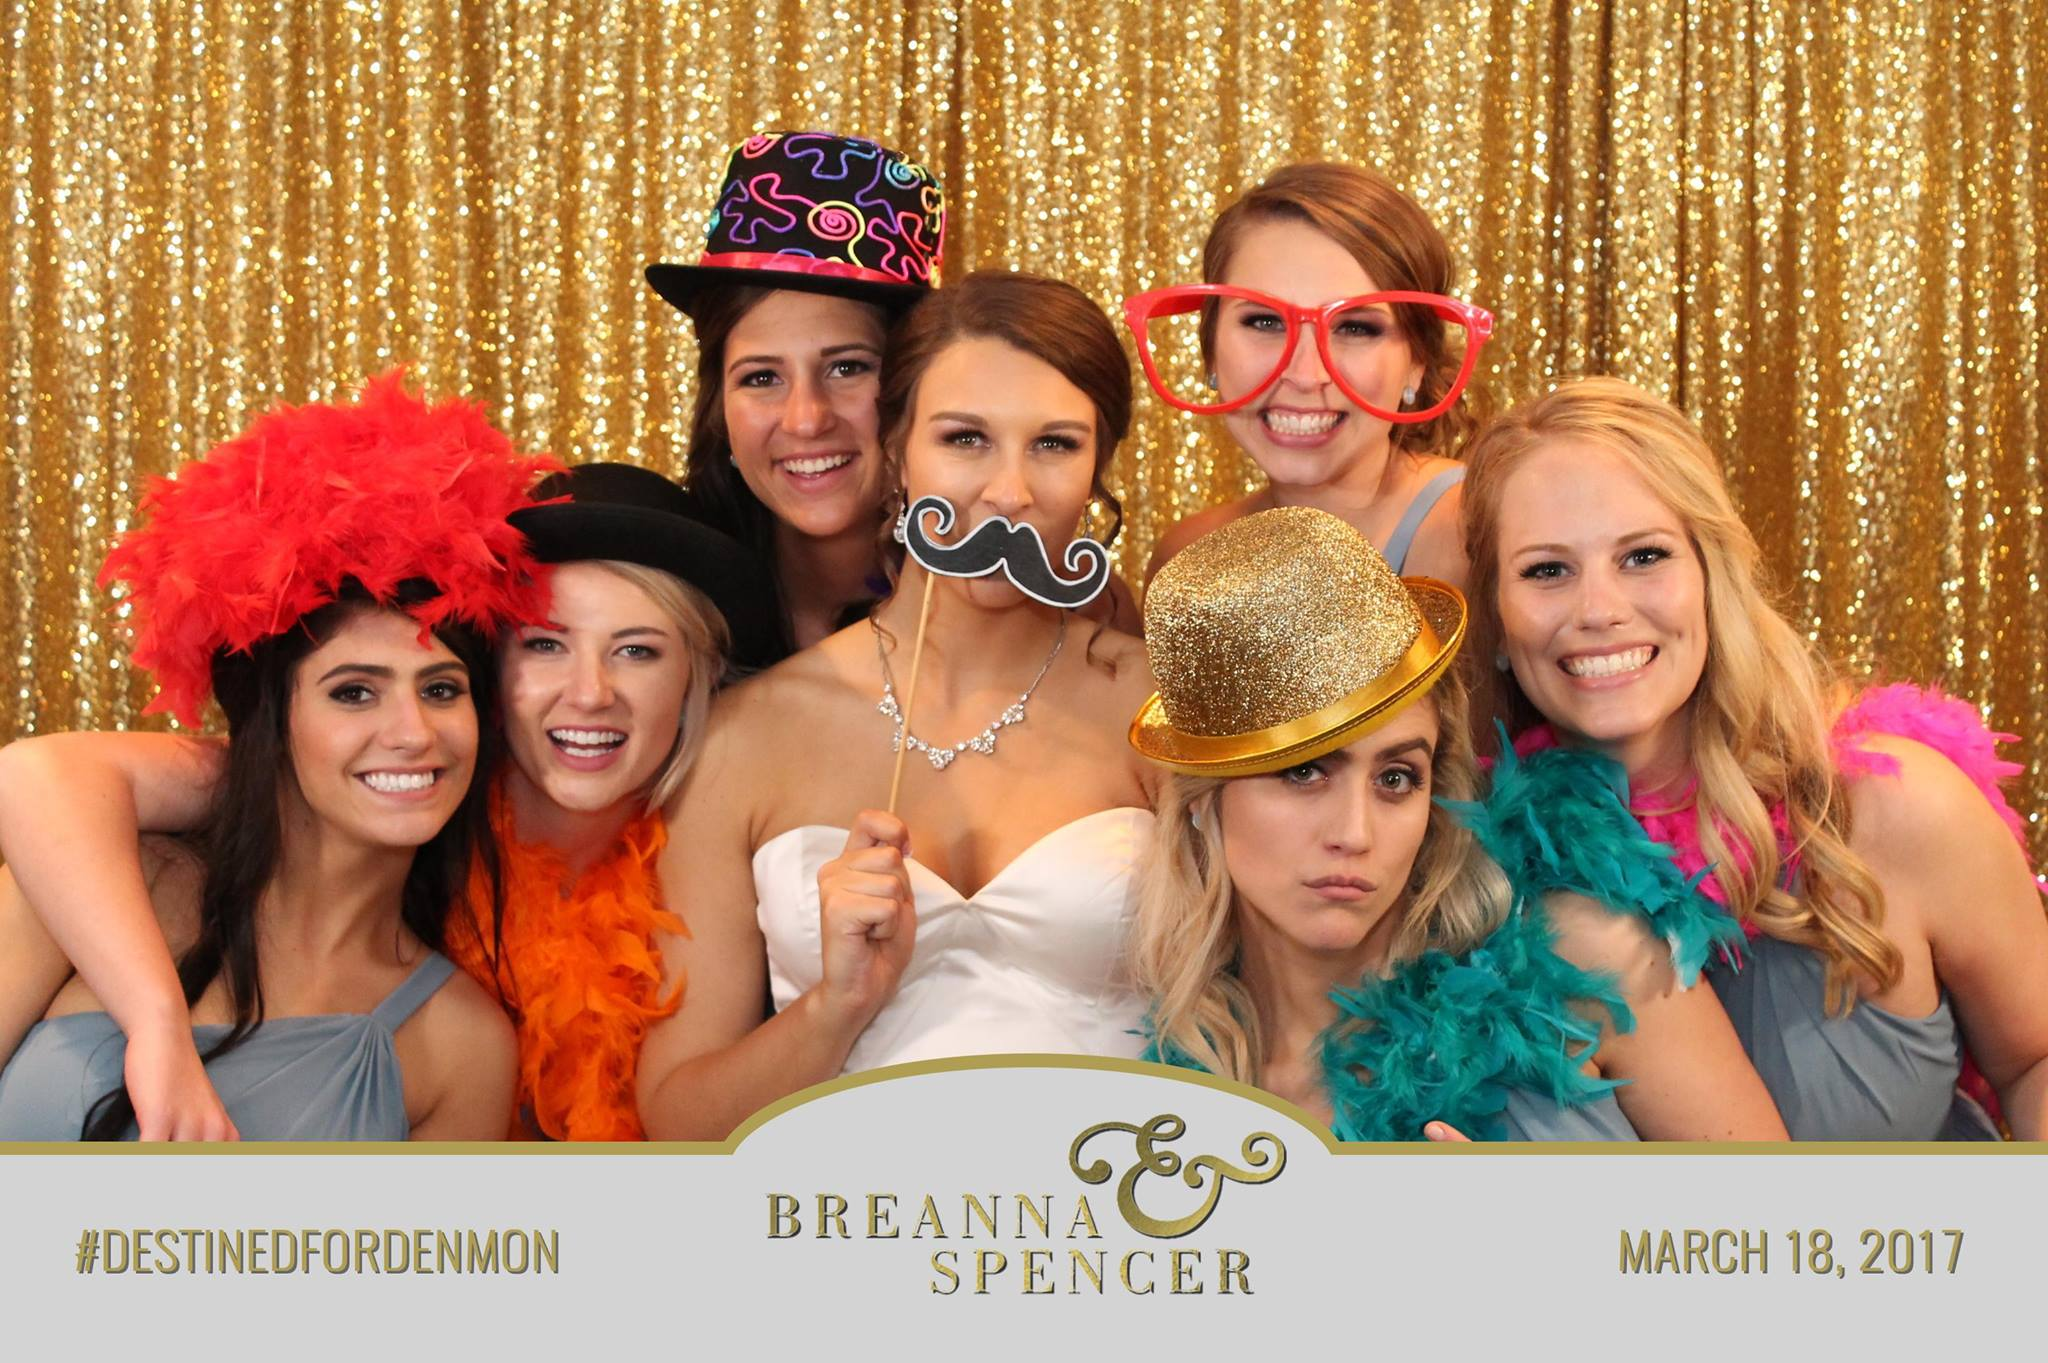 Wedding Entertainment Photo Booth